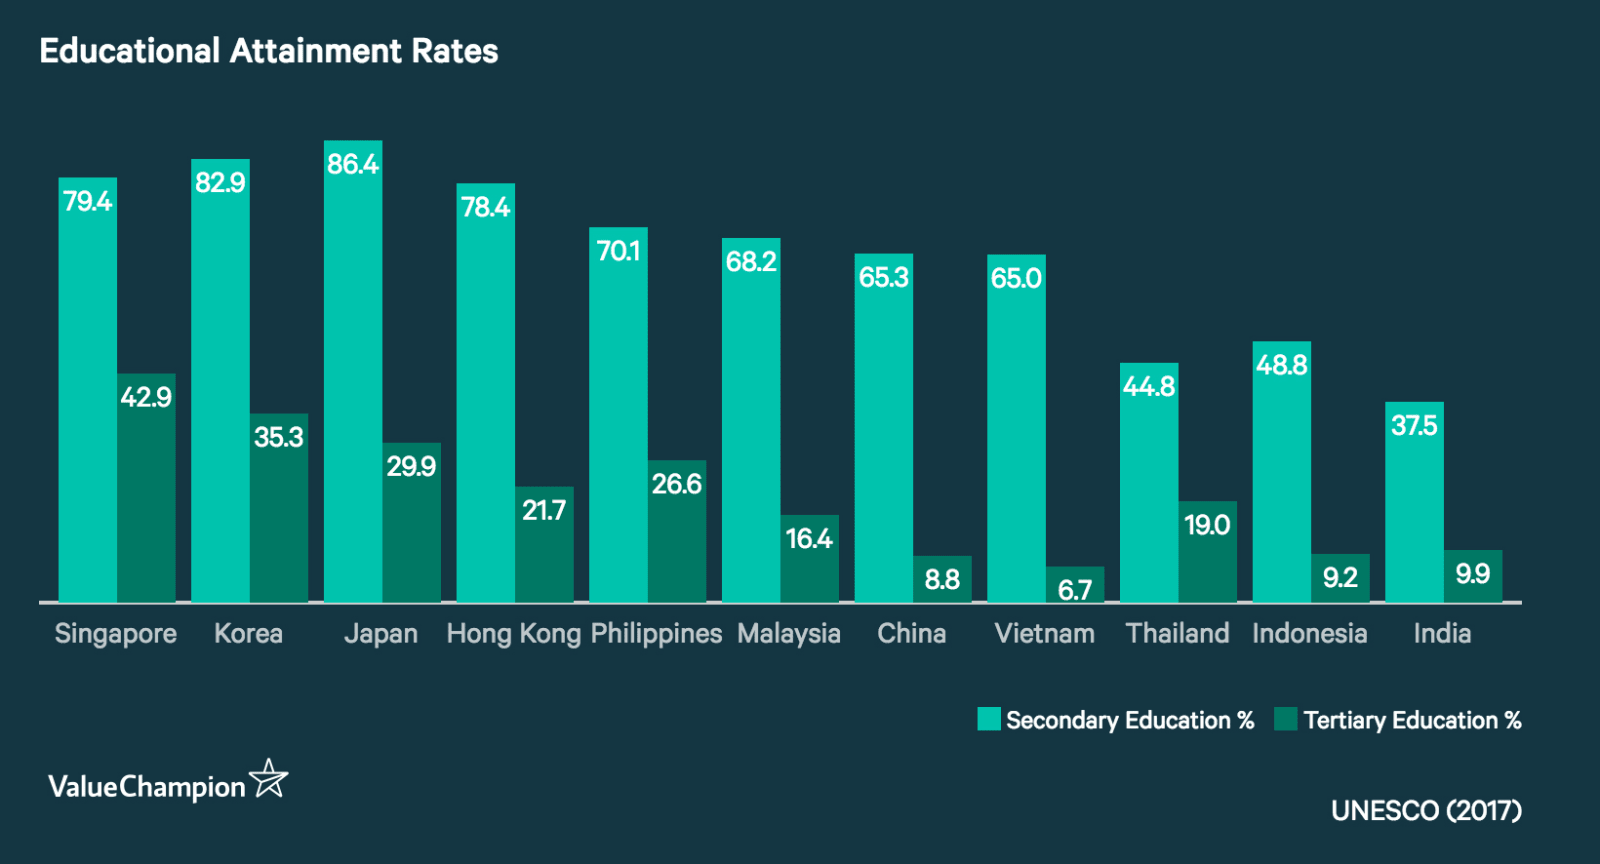 Educational attainment rates vary by country.